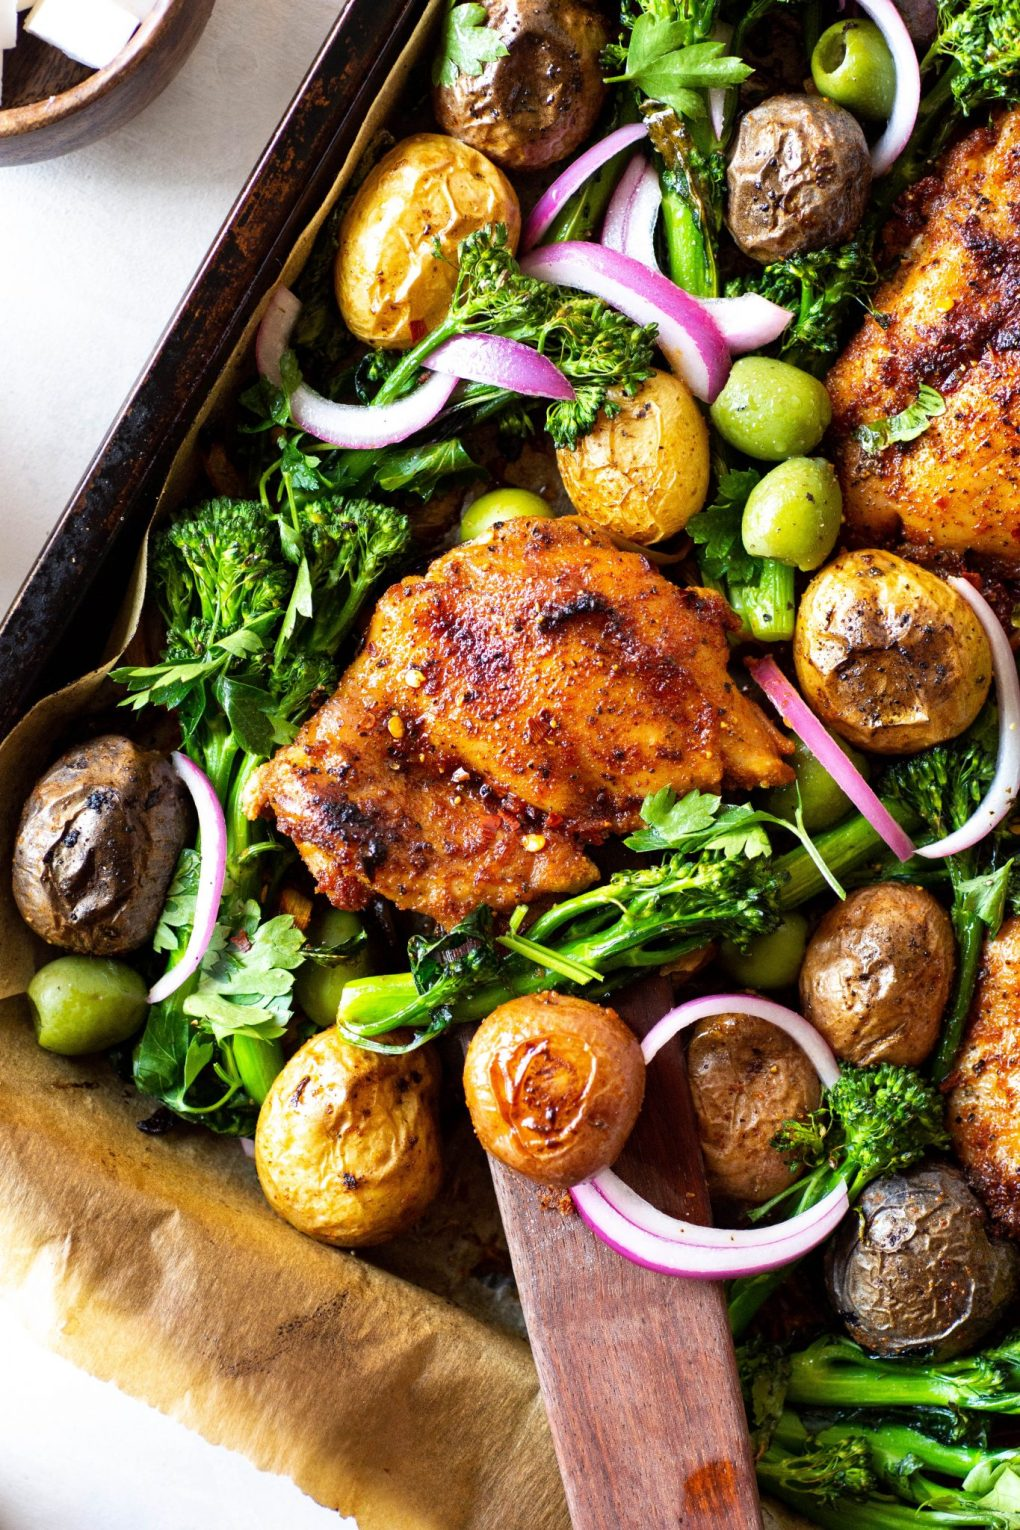 Overhead view of of an angled roasting tray with spiced chicken thighs, potatos, broccolini, olives, and pickled red onions. On a white background next to a small wooden bowl of feta cheese.